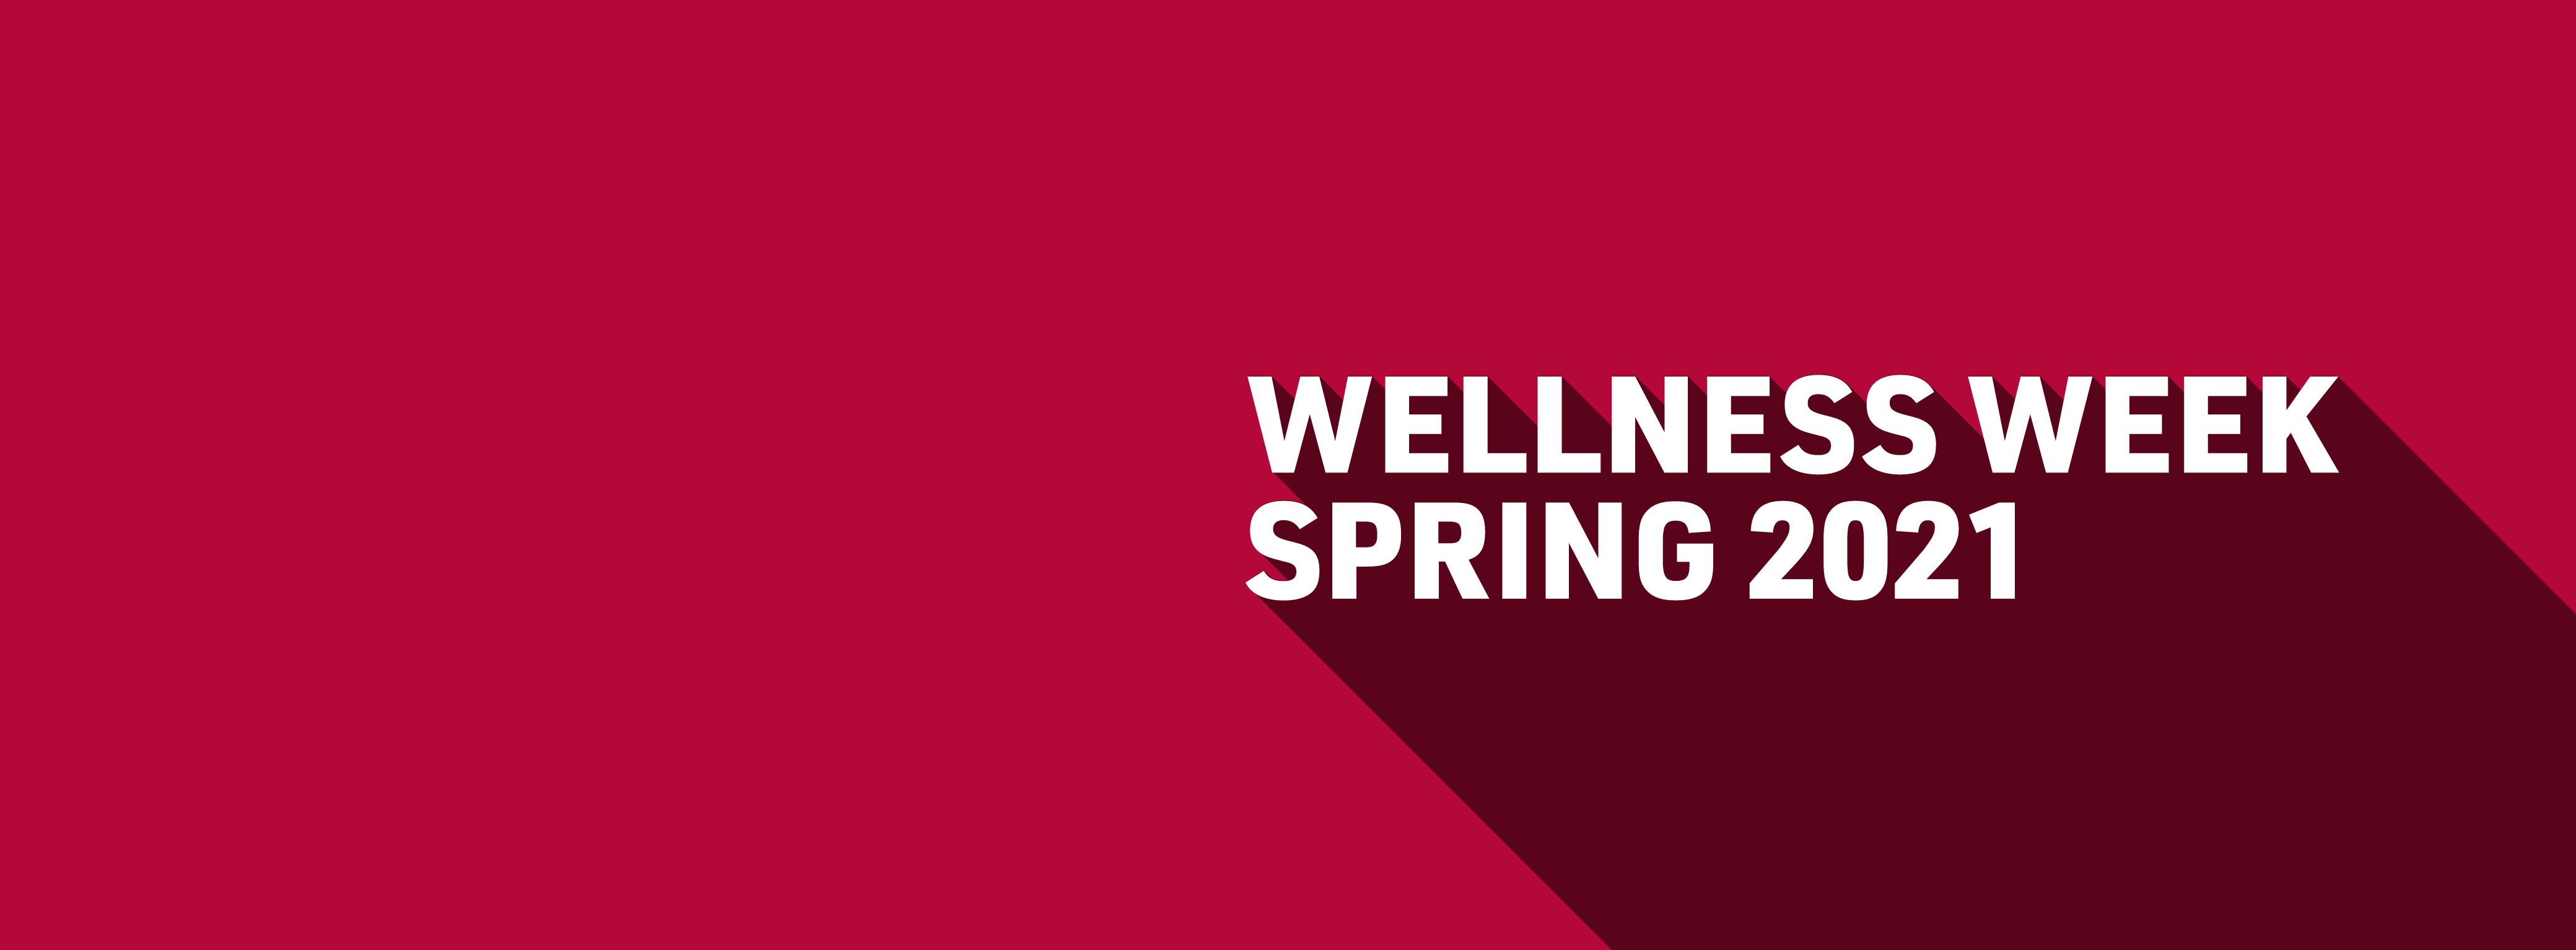 "Text Reads ""Wellness Week Spring 2021 March 8th-12th"""